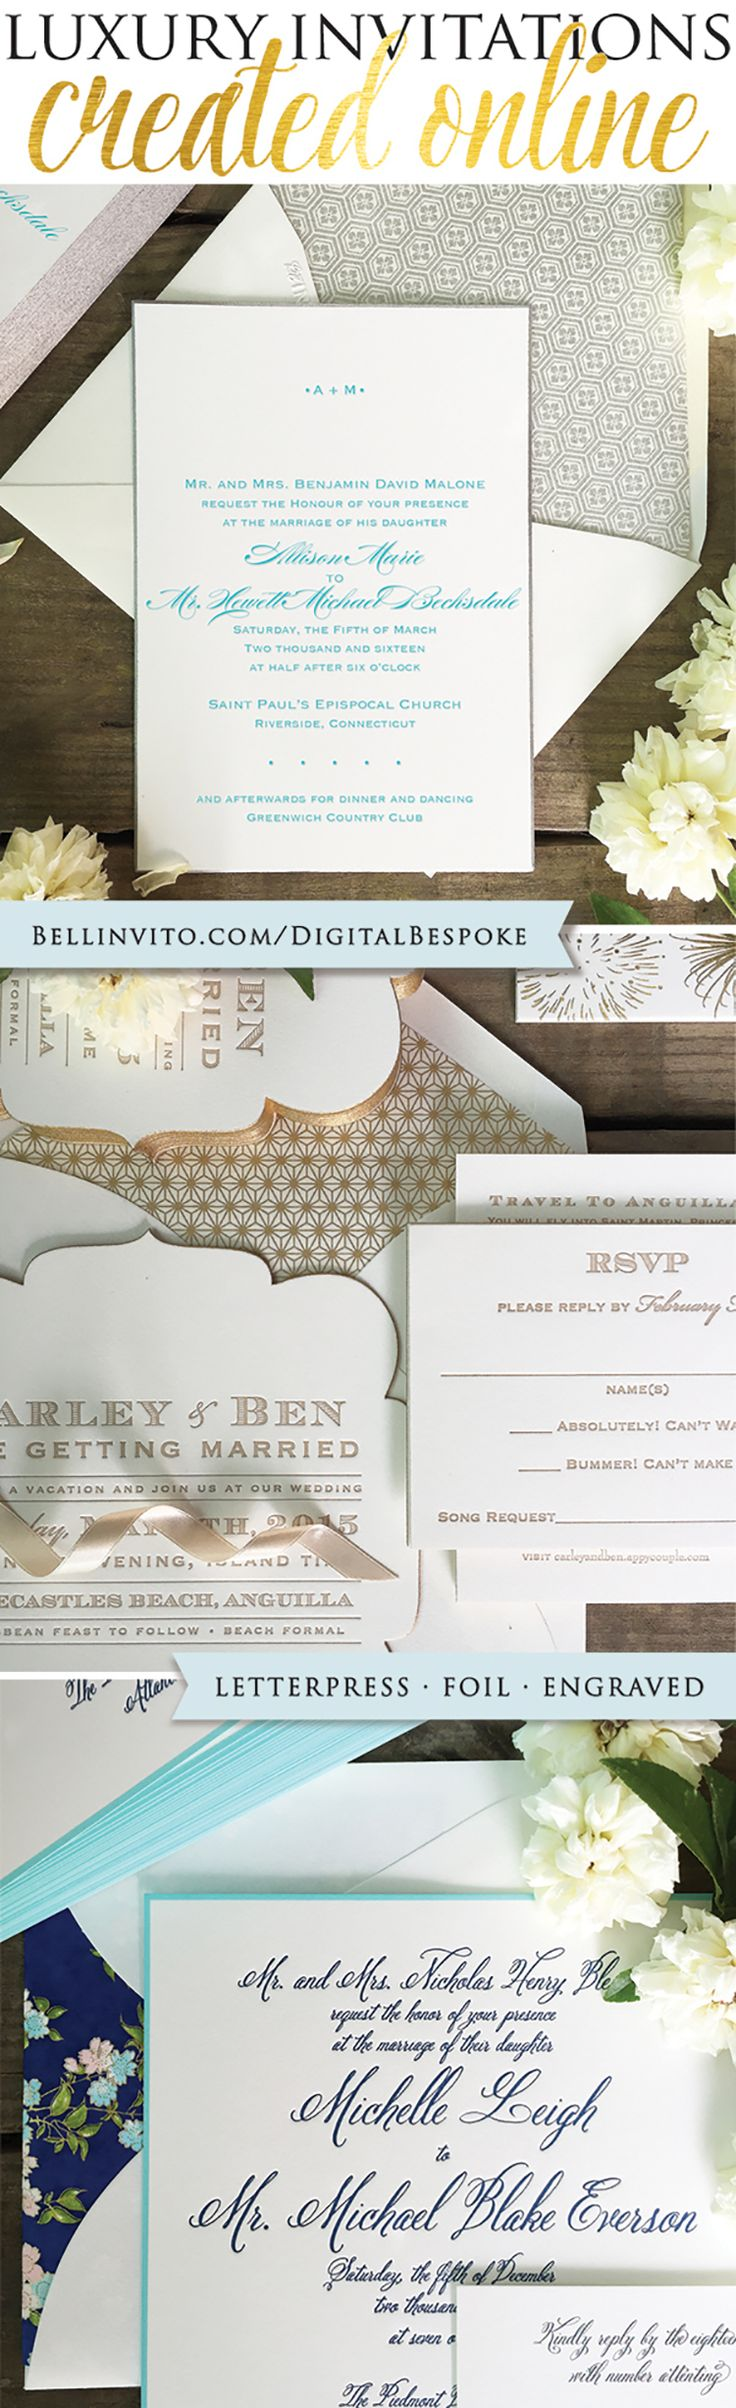 Design your own wedding invitations online using